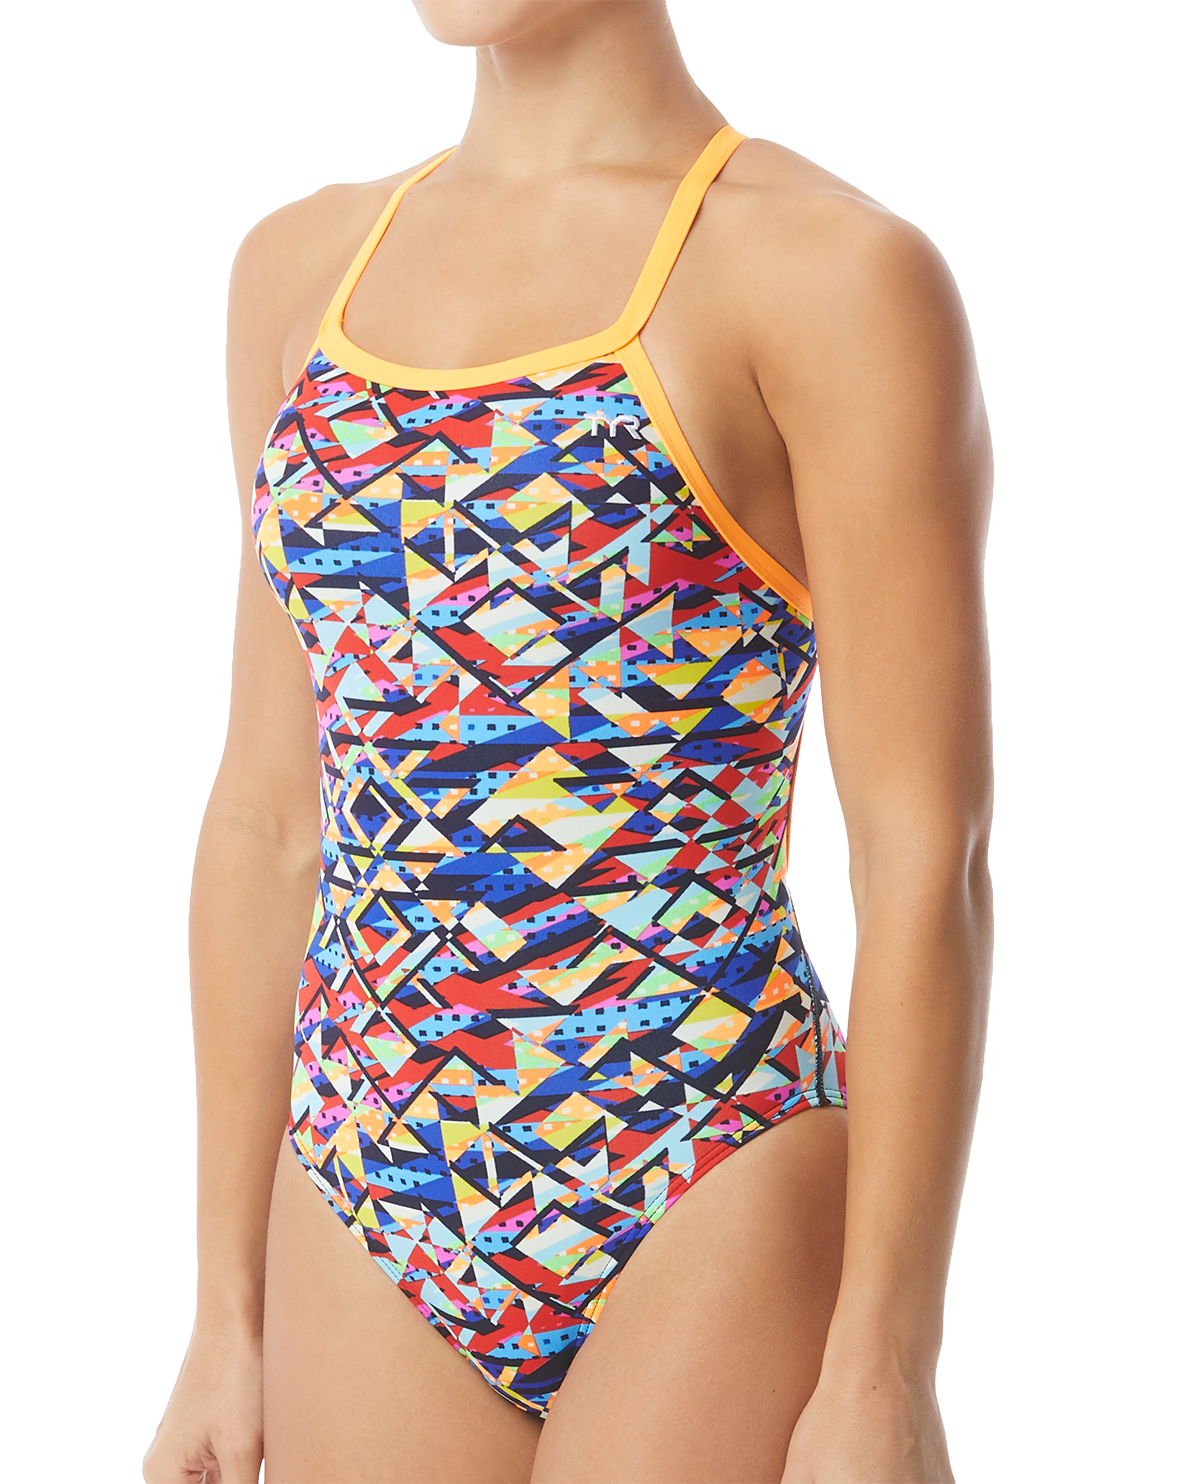 d8b24dadb04 TYR Women's Mosaic Diamondfit Swimsuit | TYR